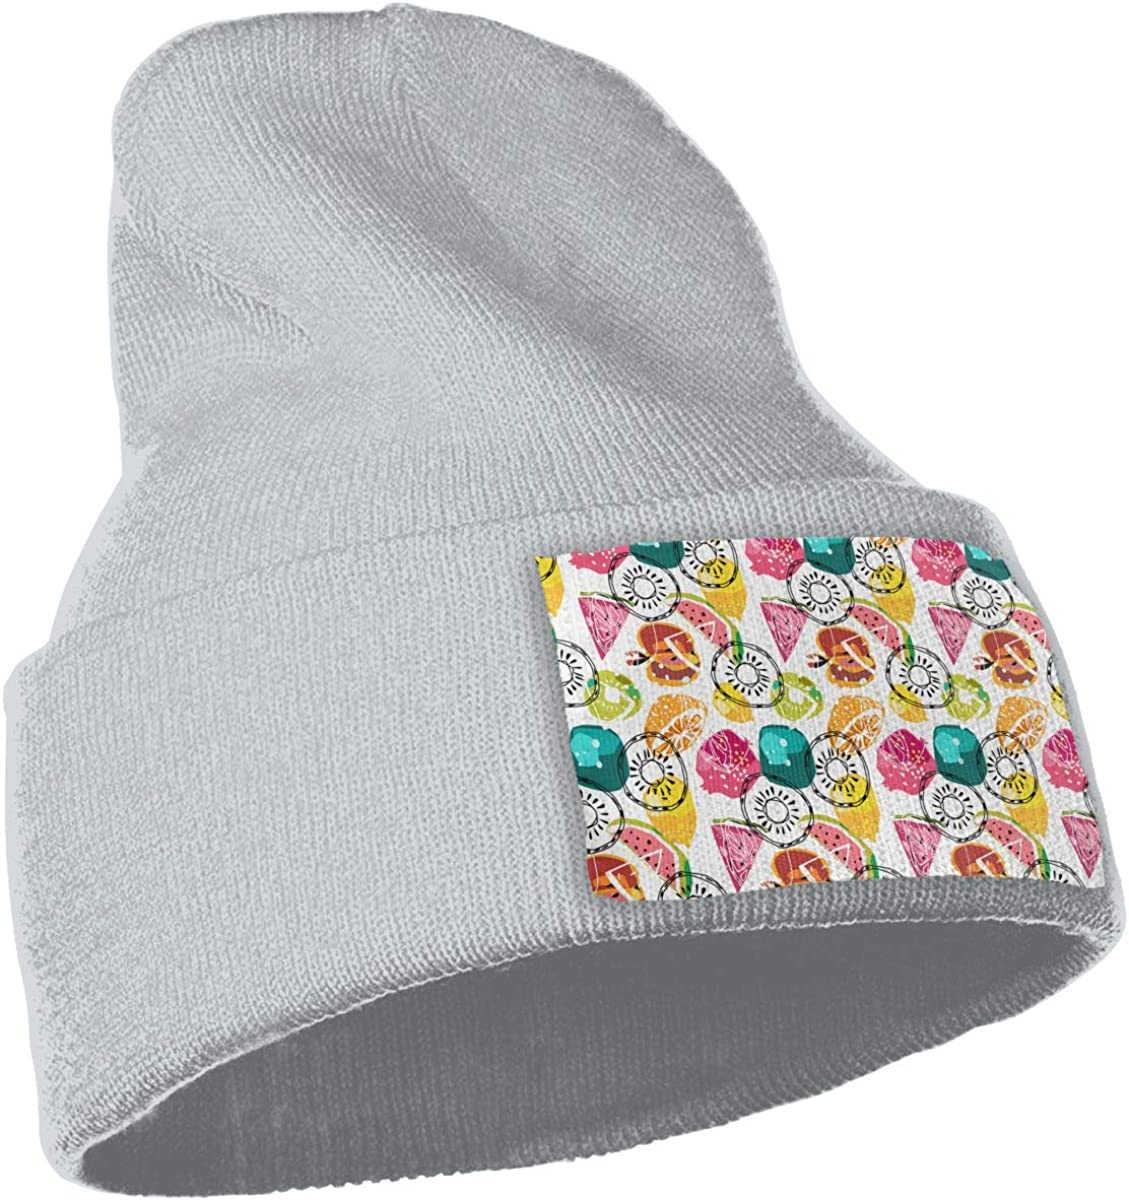 Cartoon Fruit Art Seamless Mode Unisex Fashion Knitted Hat Luxury Hip-Hop Cap